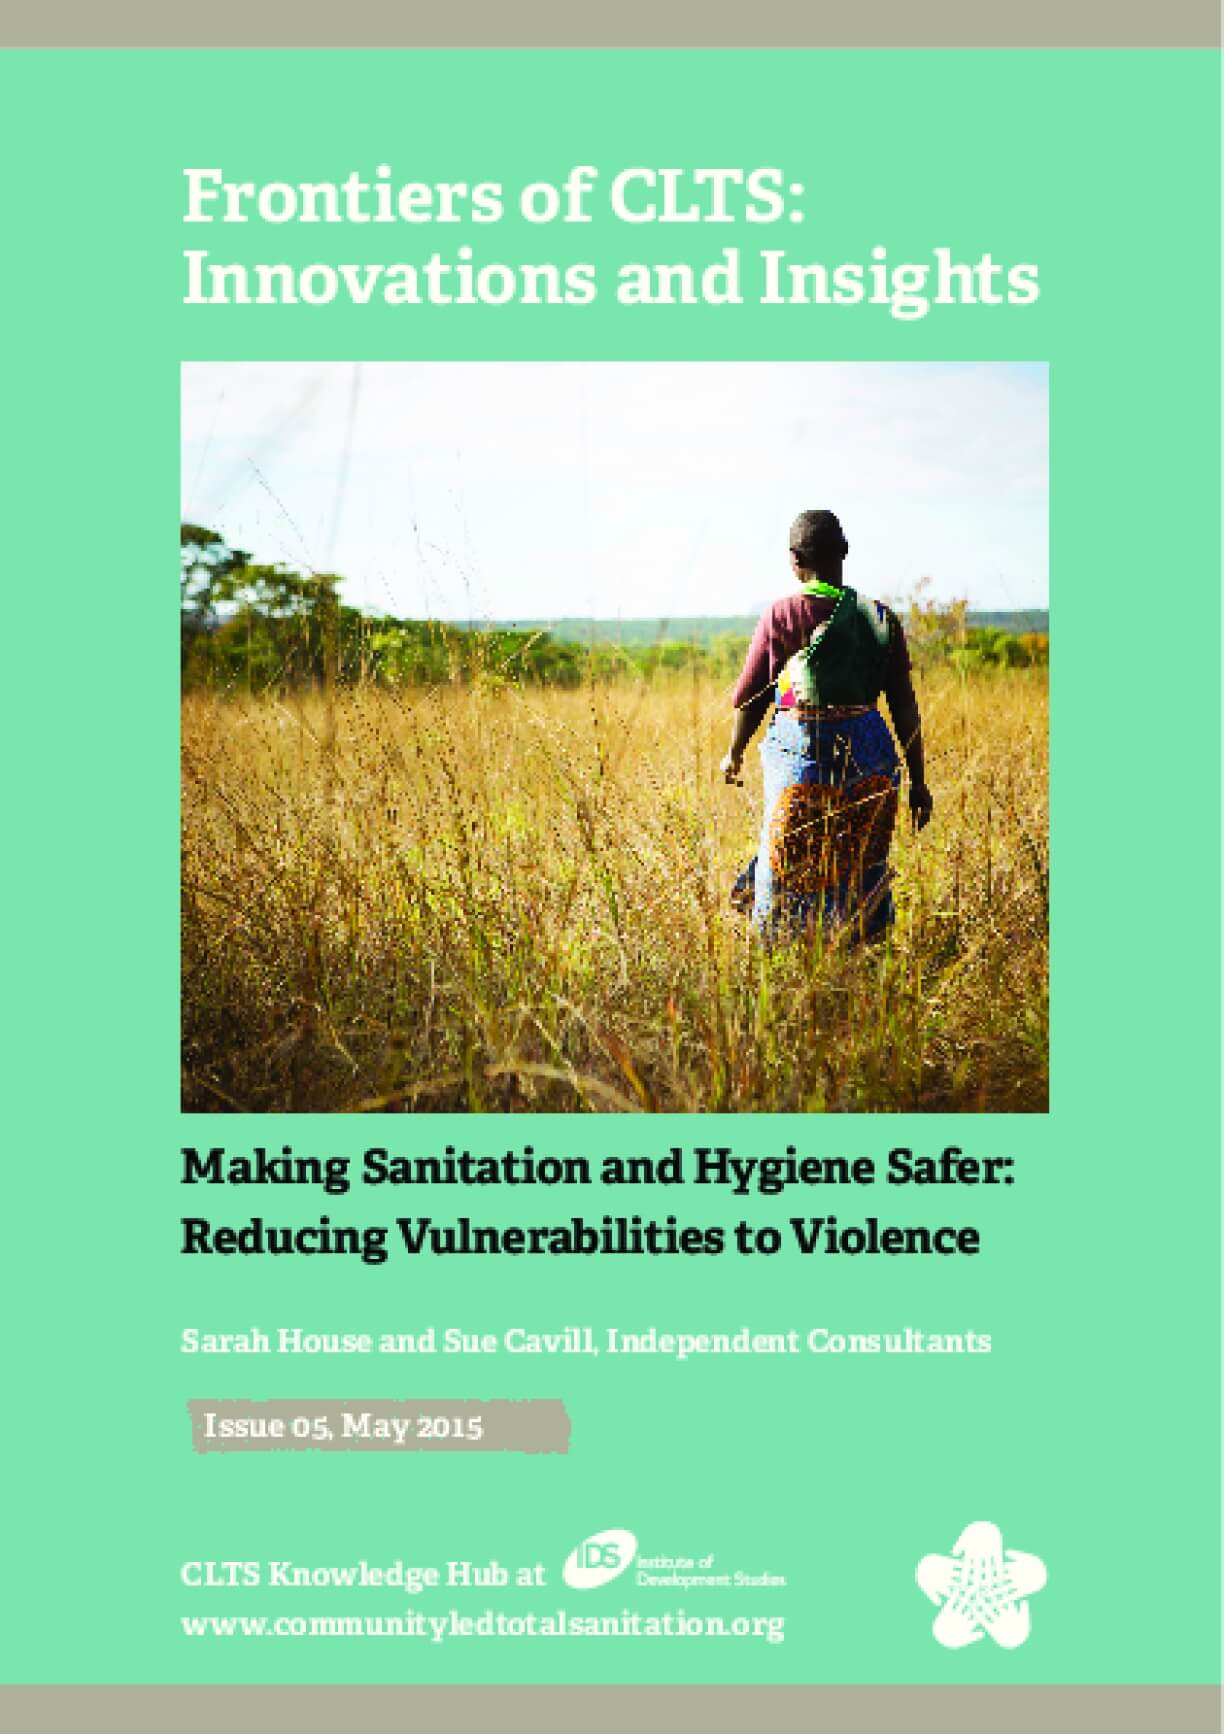 Making Sanitation and Hygiene Safer: Reducing Vulnerabilities to Violence